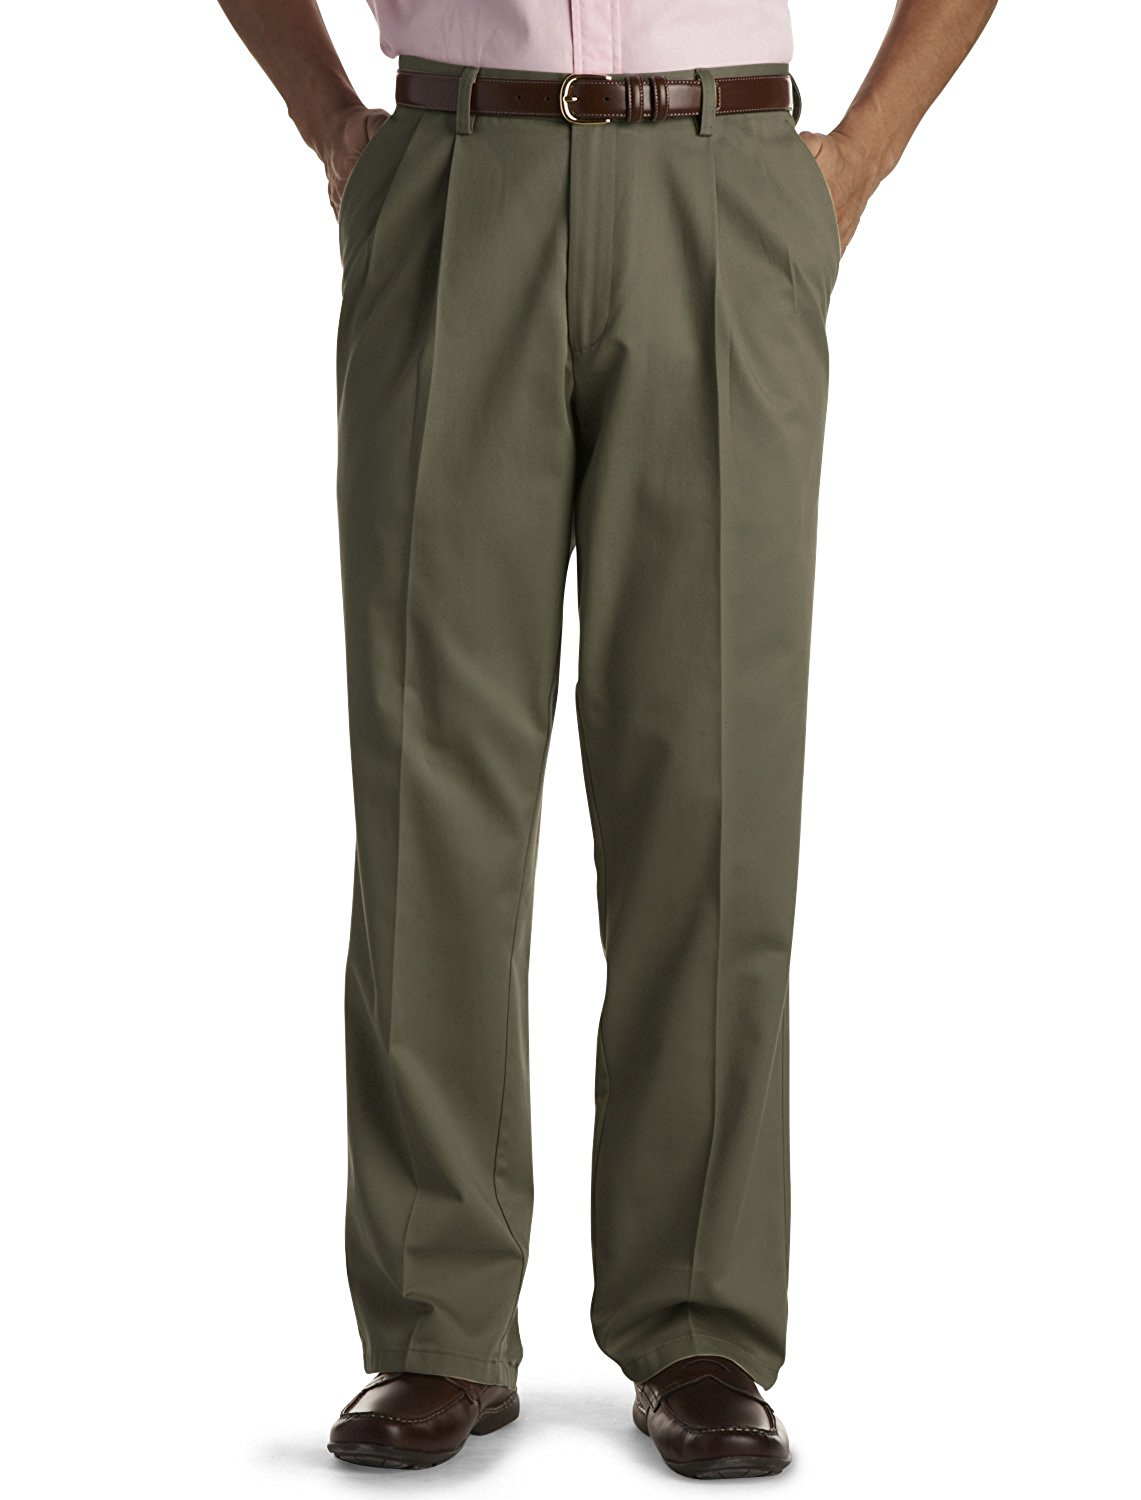 Dockers Mens Big & Tall Pleated Original Khaki Pants, W56 X L32, Olive by Dockers